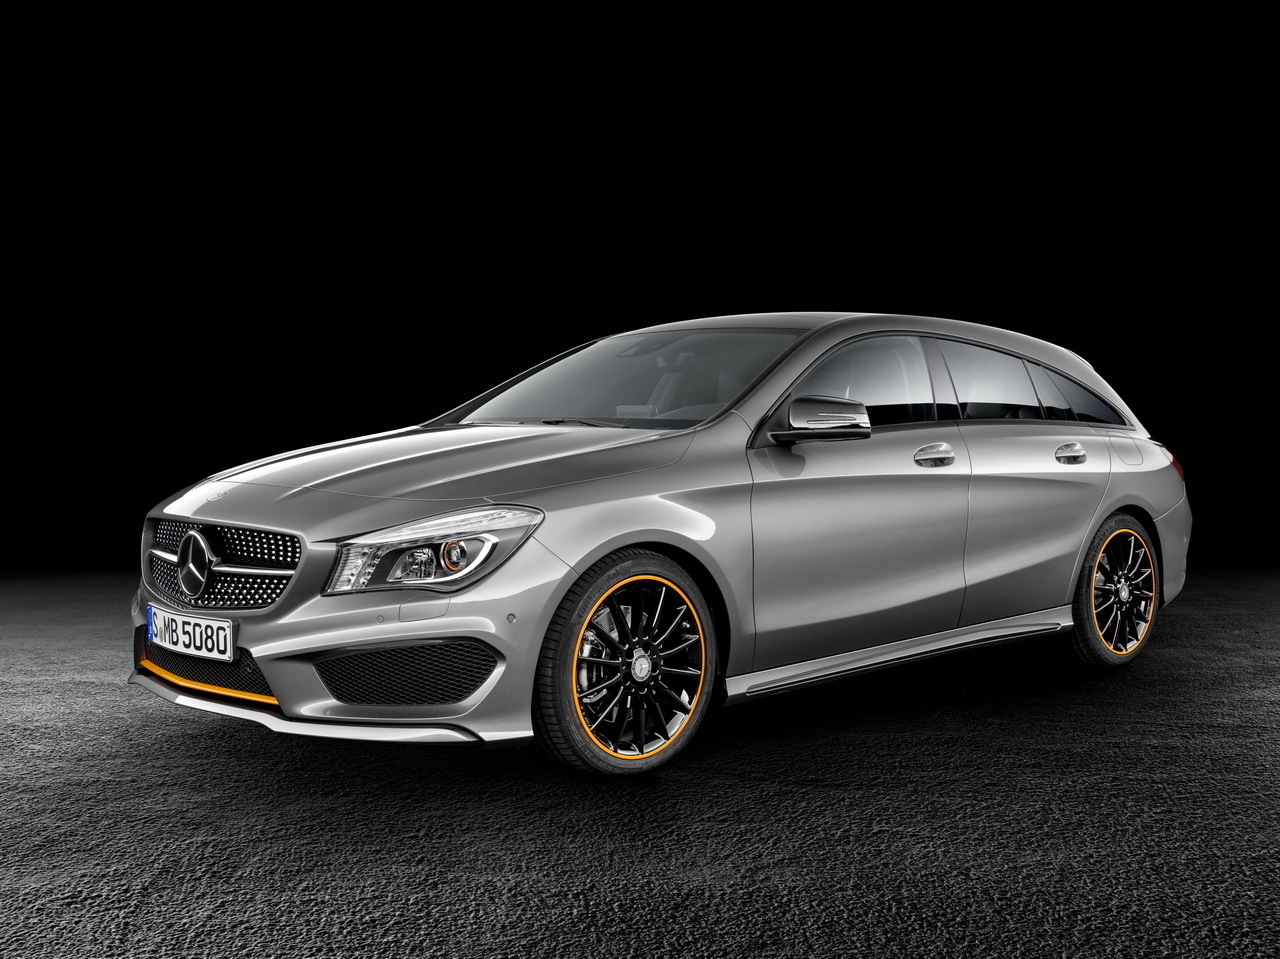 prix mercedes cla shooting brake 2015 partir de 30 900 euros l 39 argus. Black Bedroom Furniture Sets. Home Design Ideas